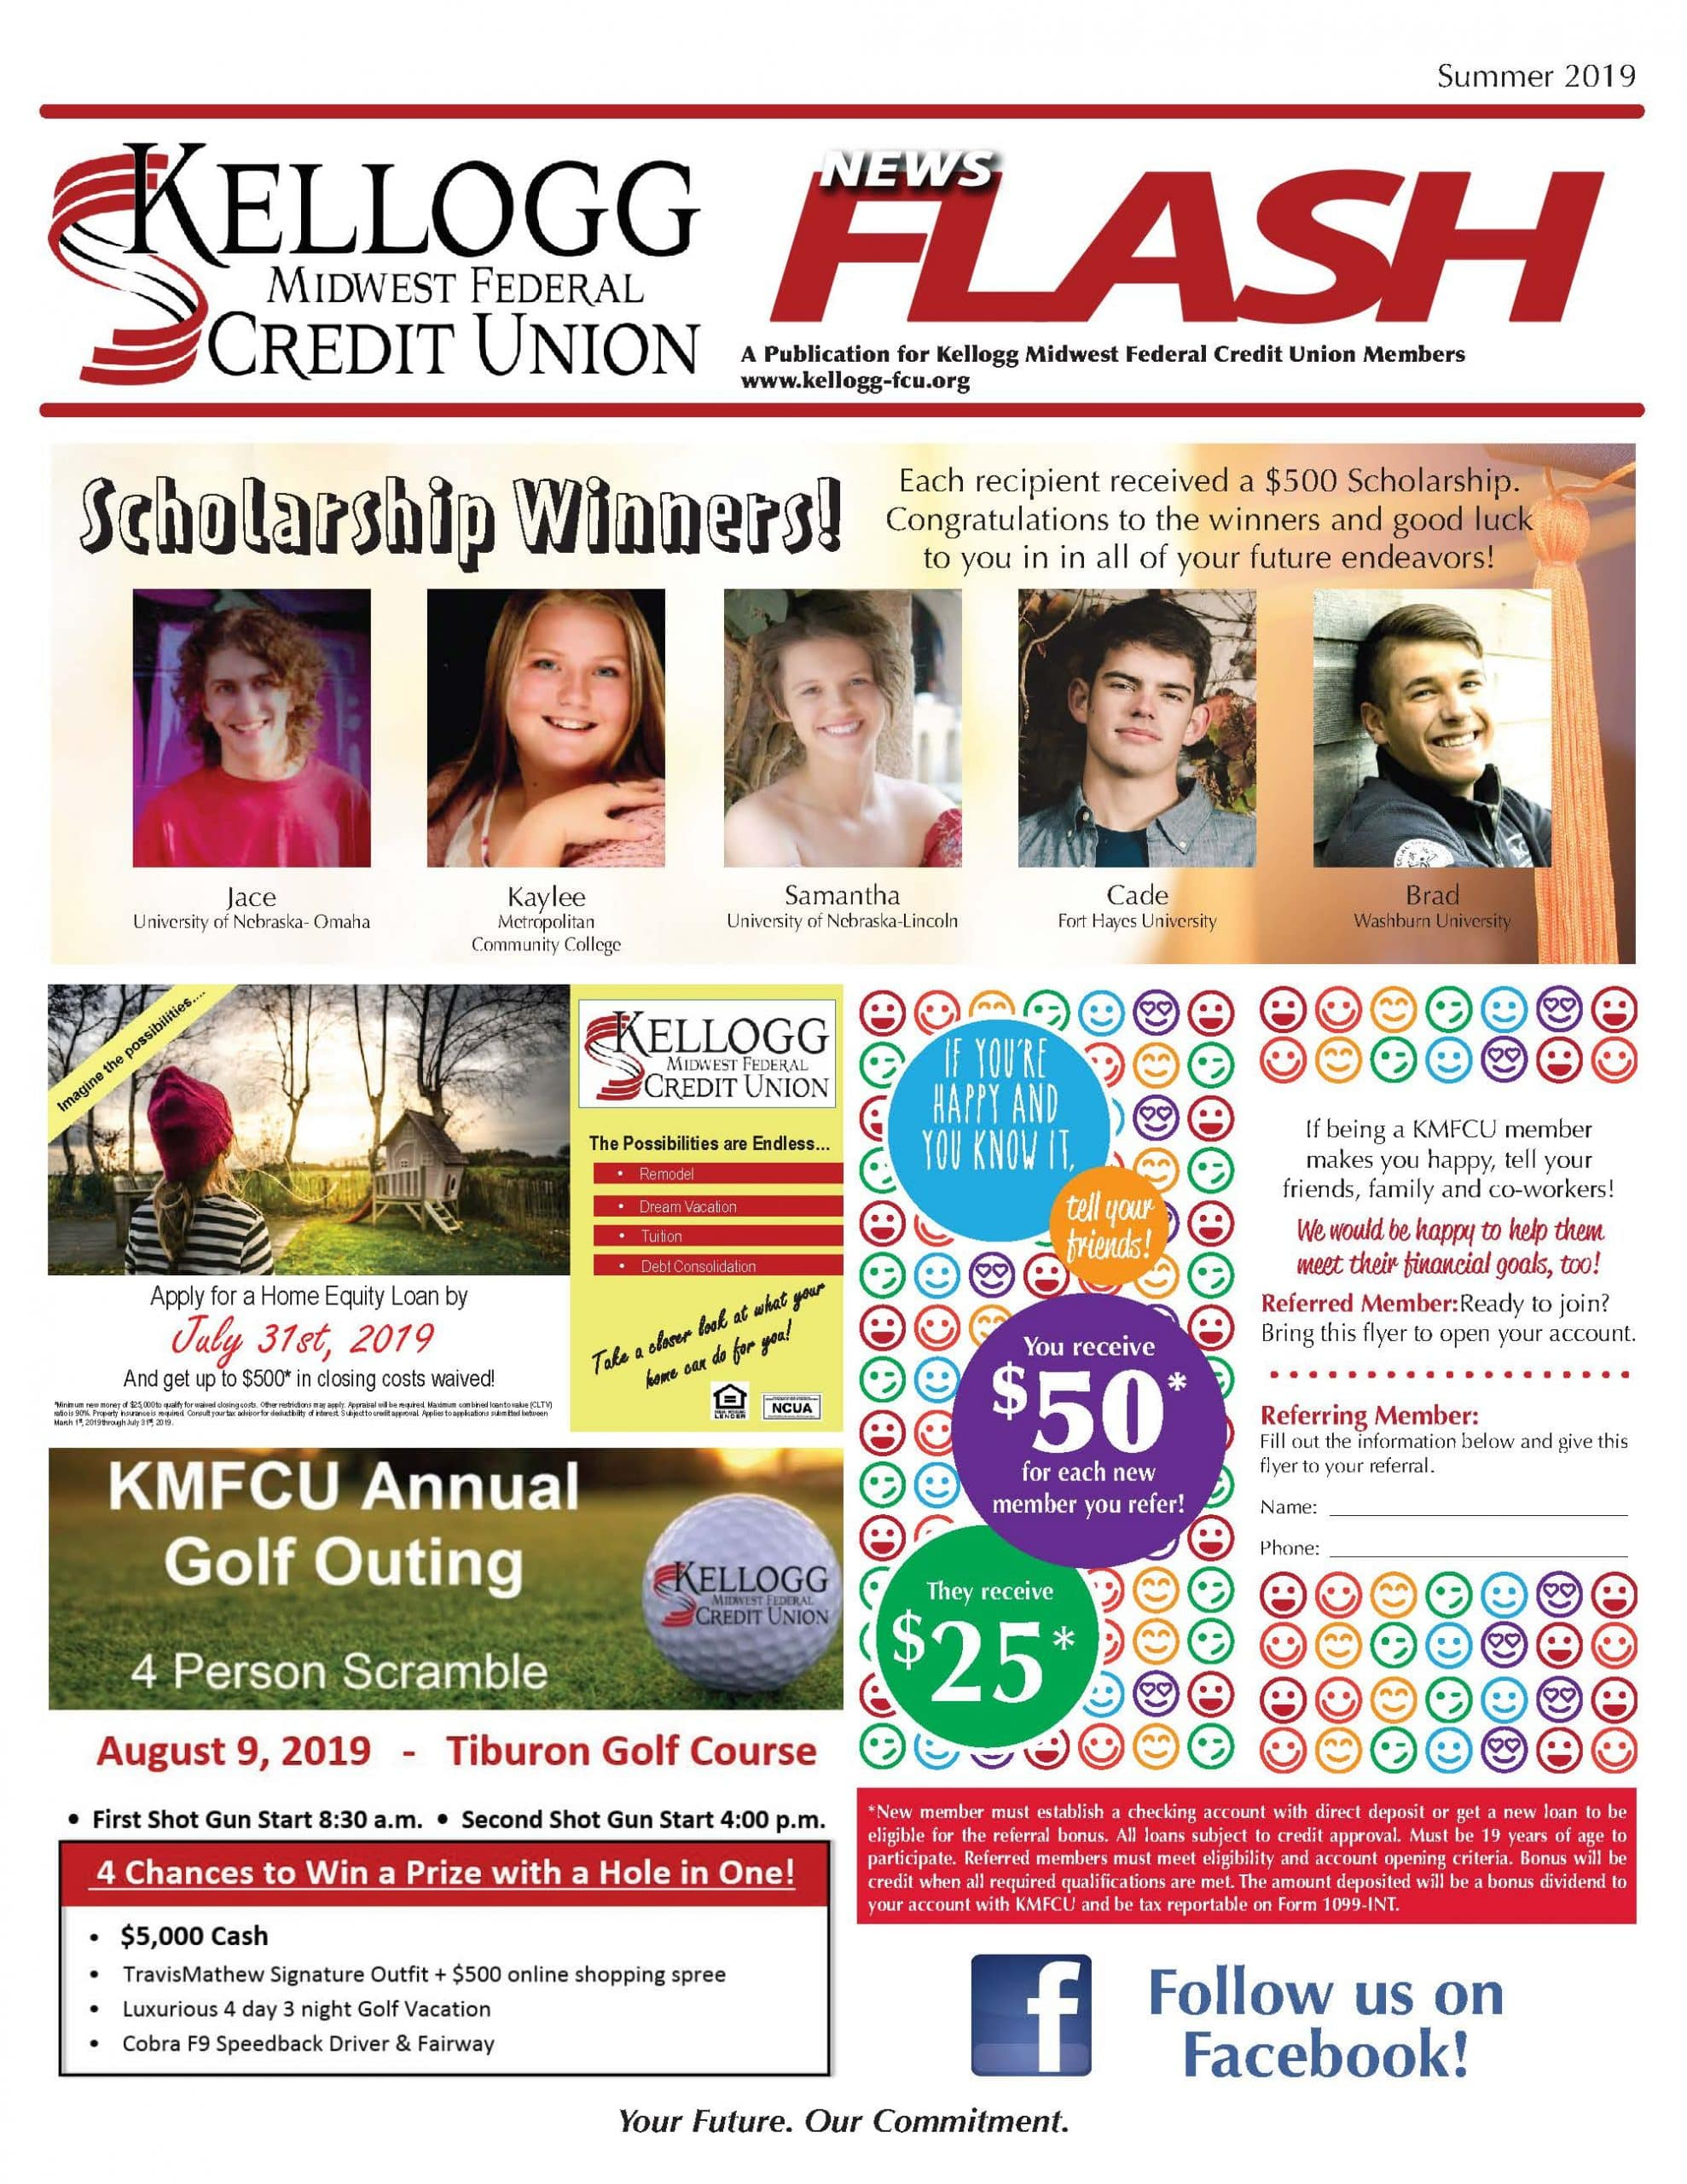 Kellogg News FLash Summer 2019